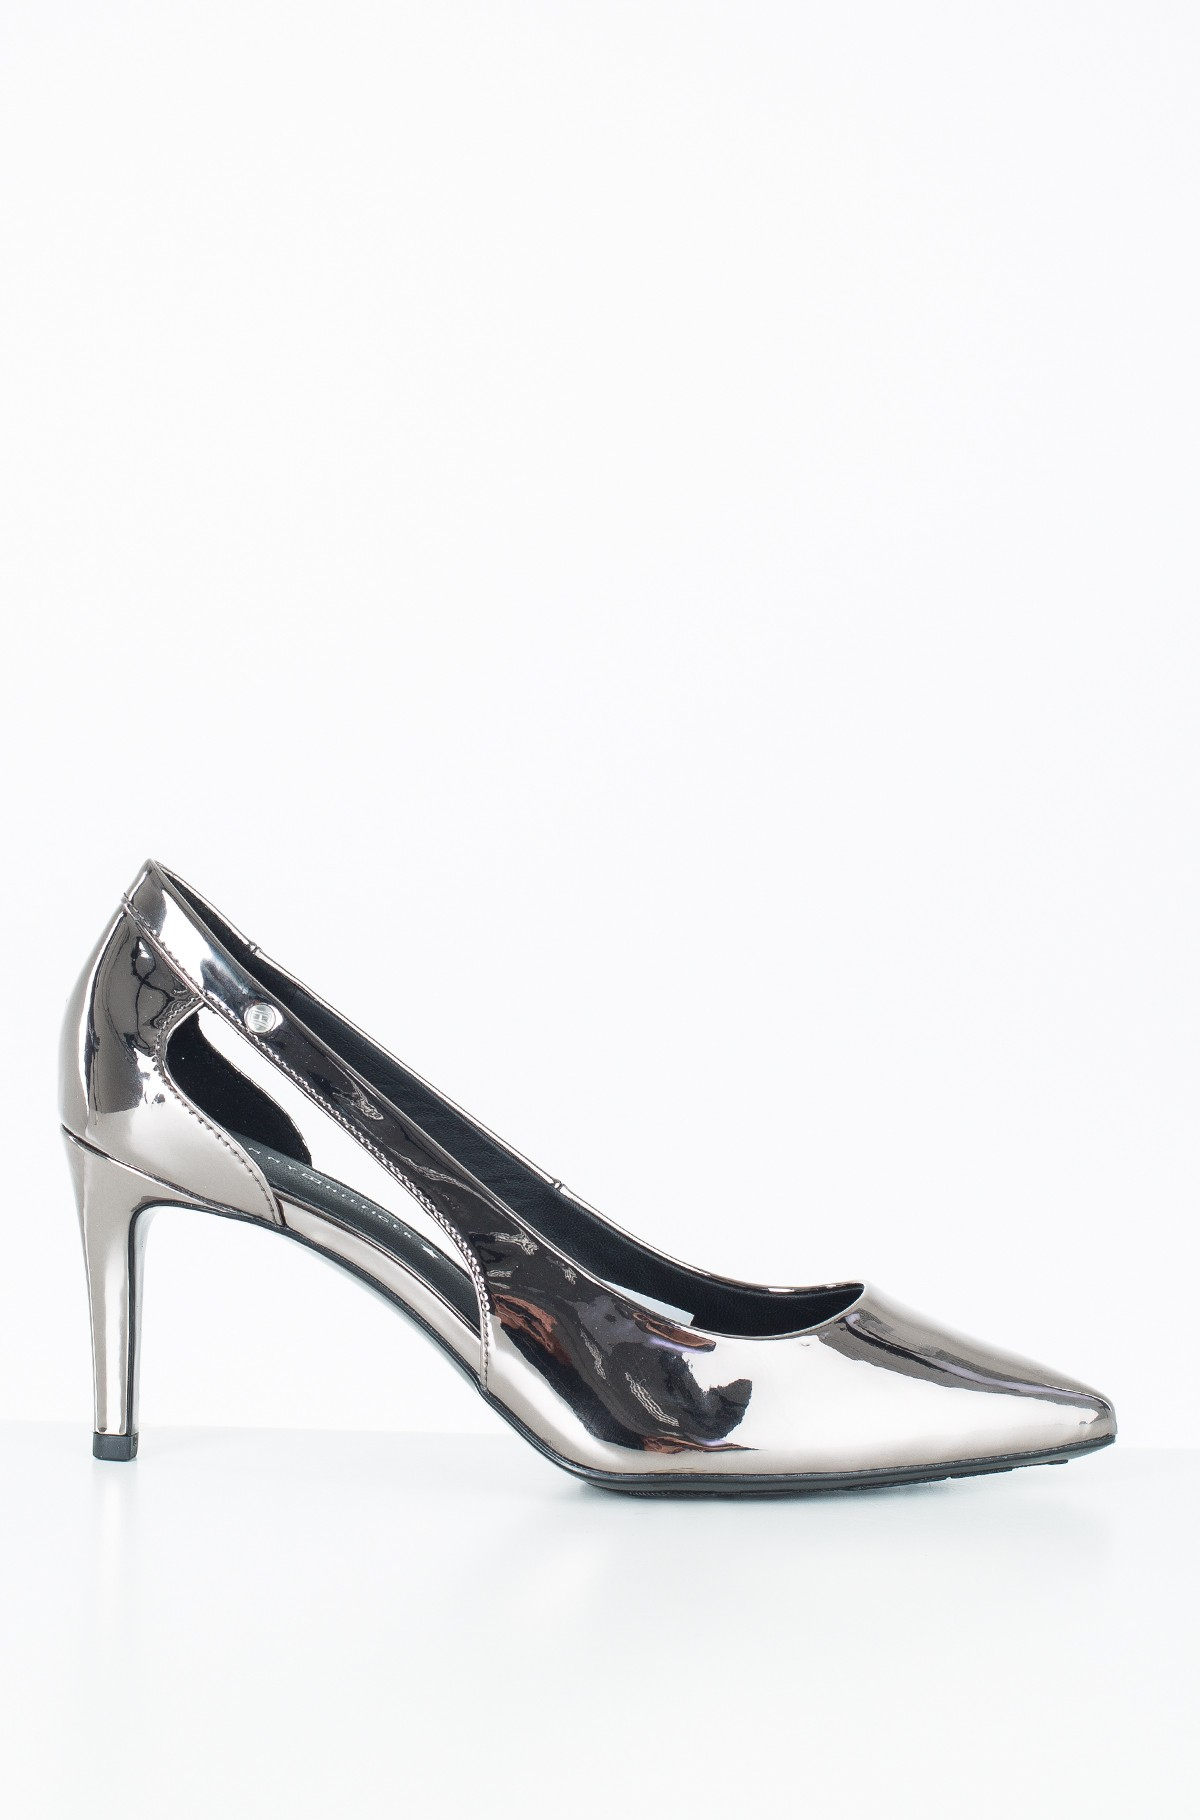 Batai MIRROR METALLIC CUT OUT PUMP-full-1